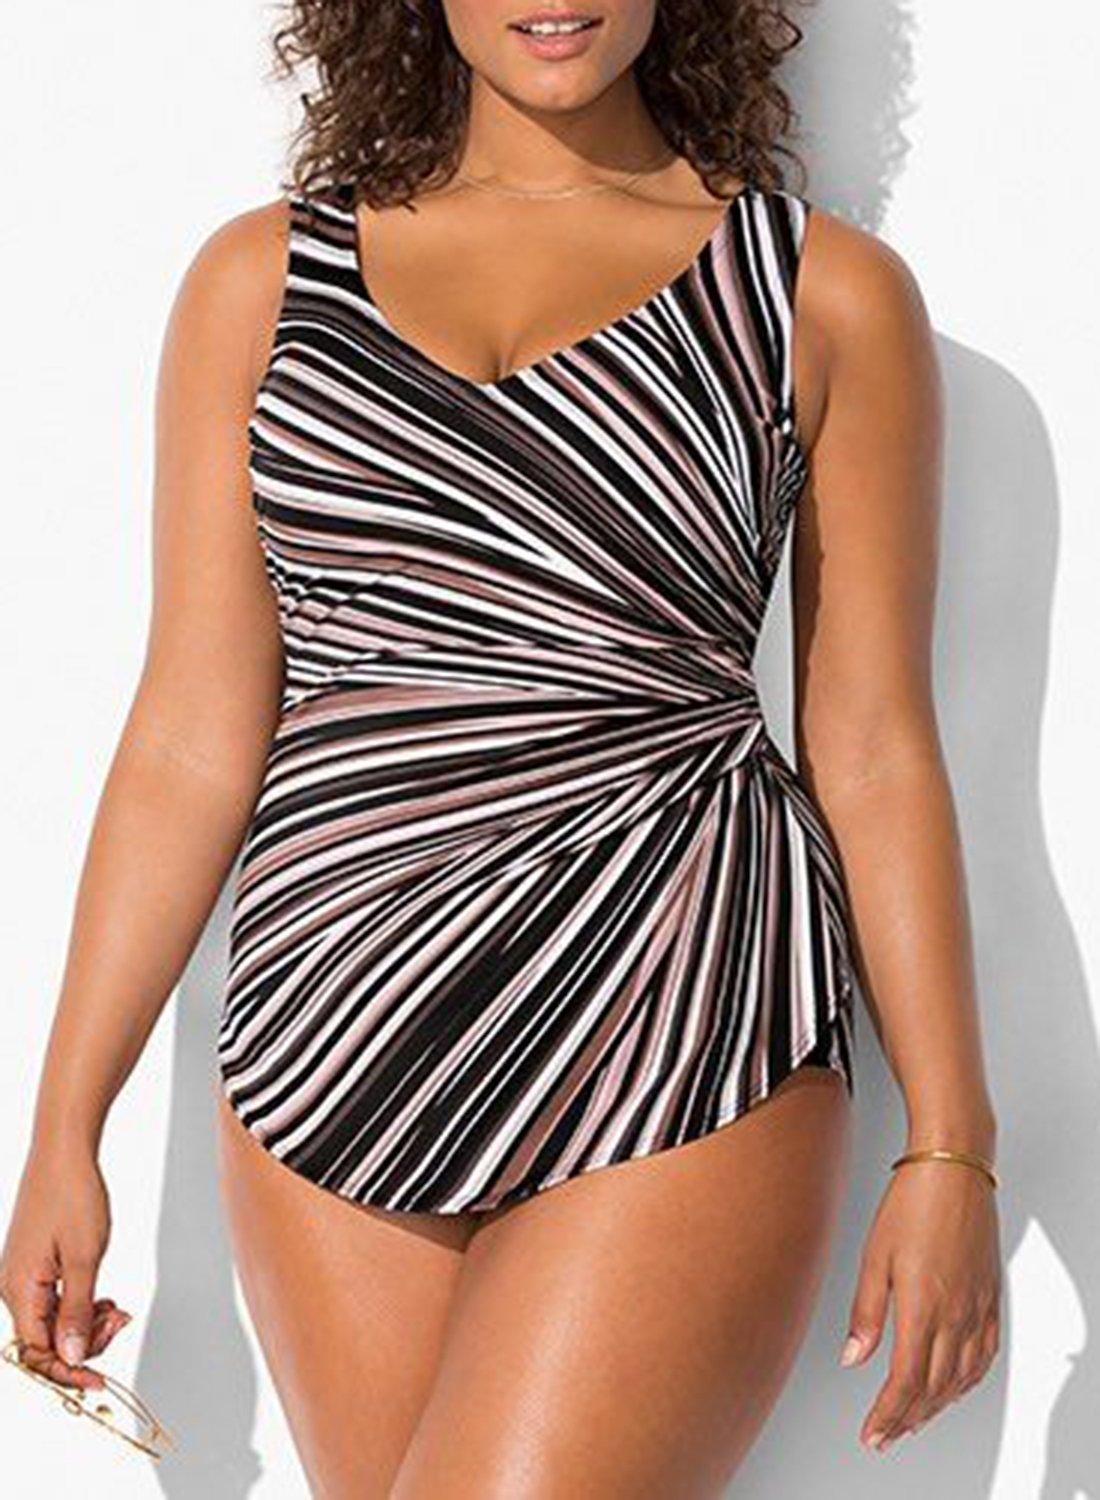 PRISM SARONG FRONT ONE PIECE SWIMSUIT choichic.com